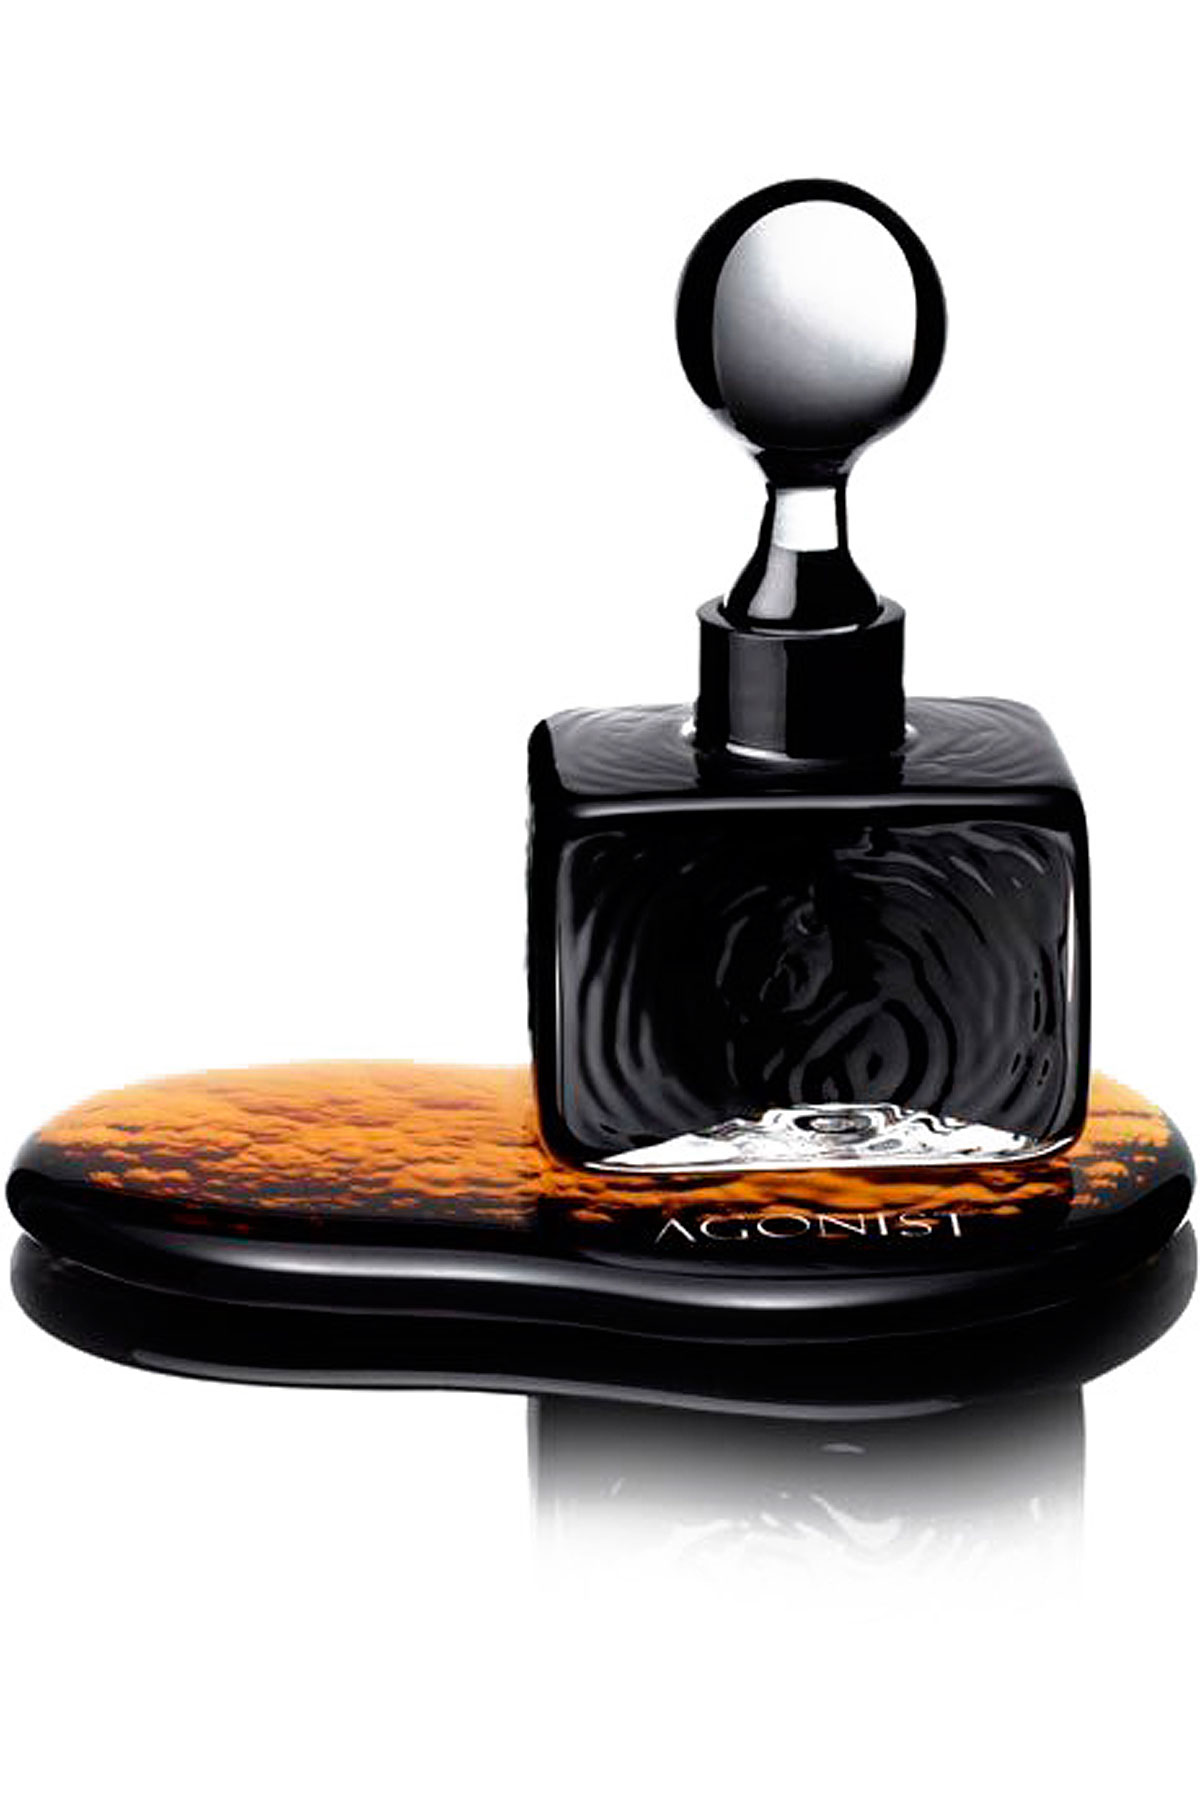 Agonist Fragrances for Women, Black Amber Sculpture - Eau De Parfum - 50 Ml, 2019, 50 ml